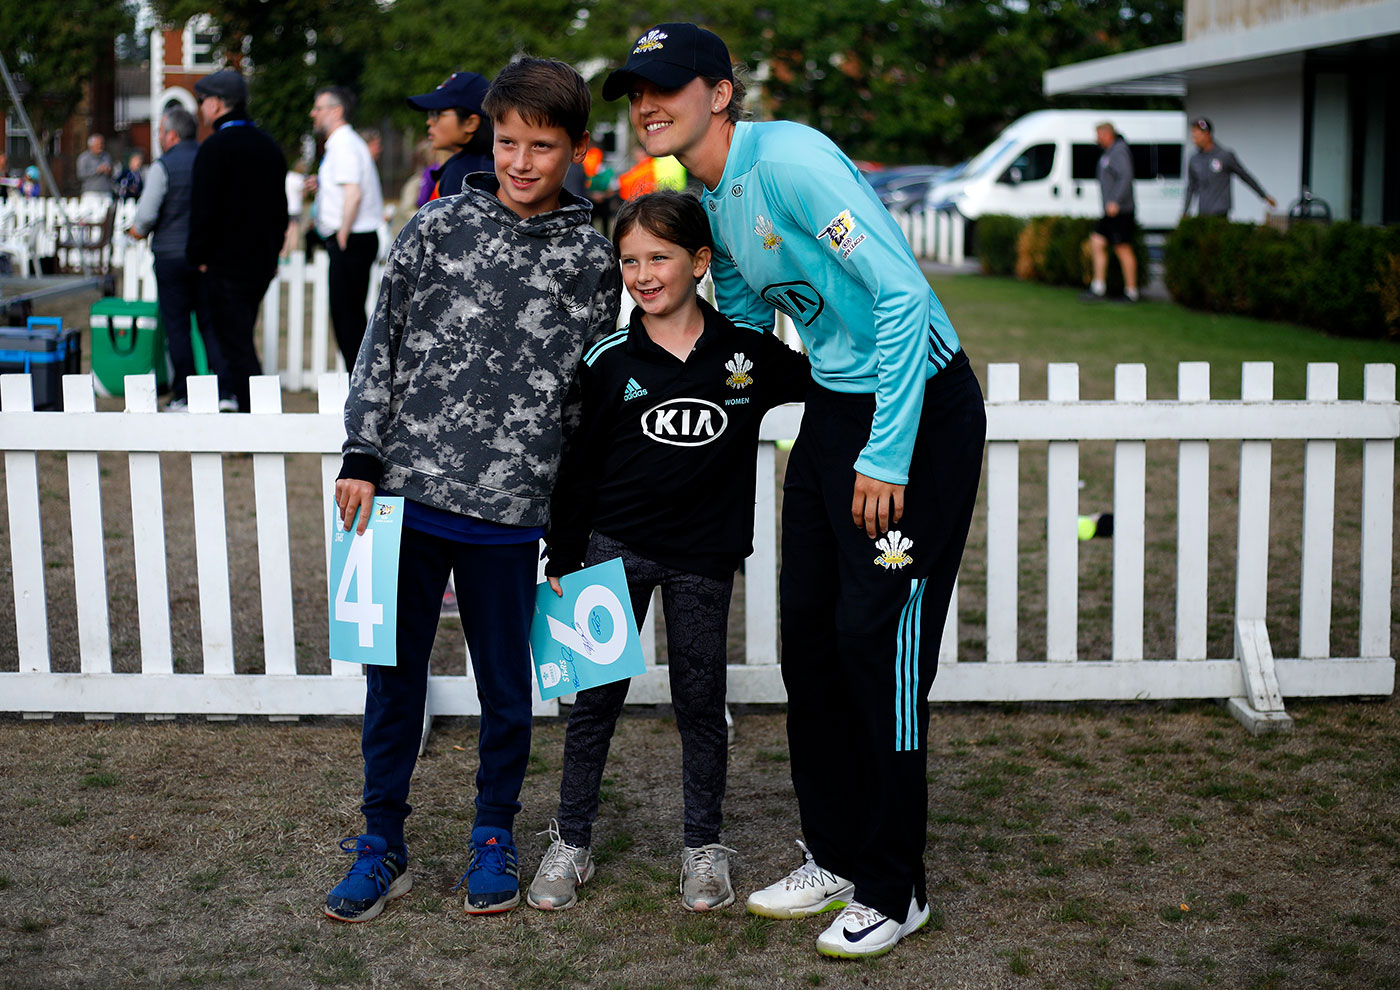 Taylor poses with young fans during a Kia Super League game